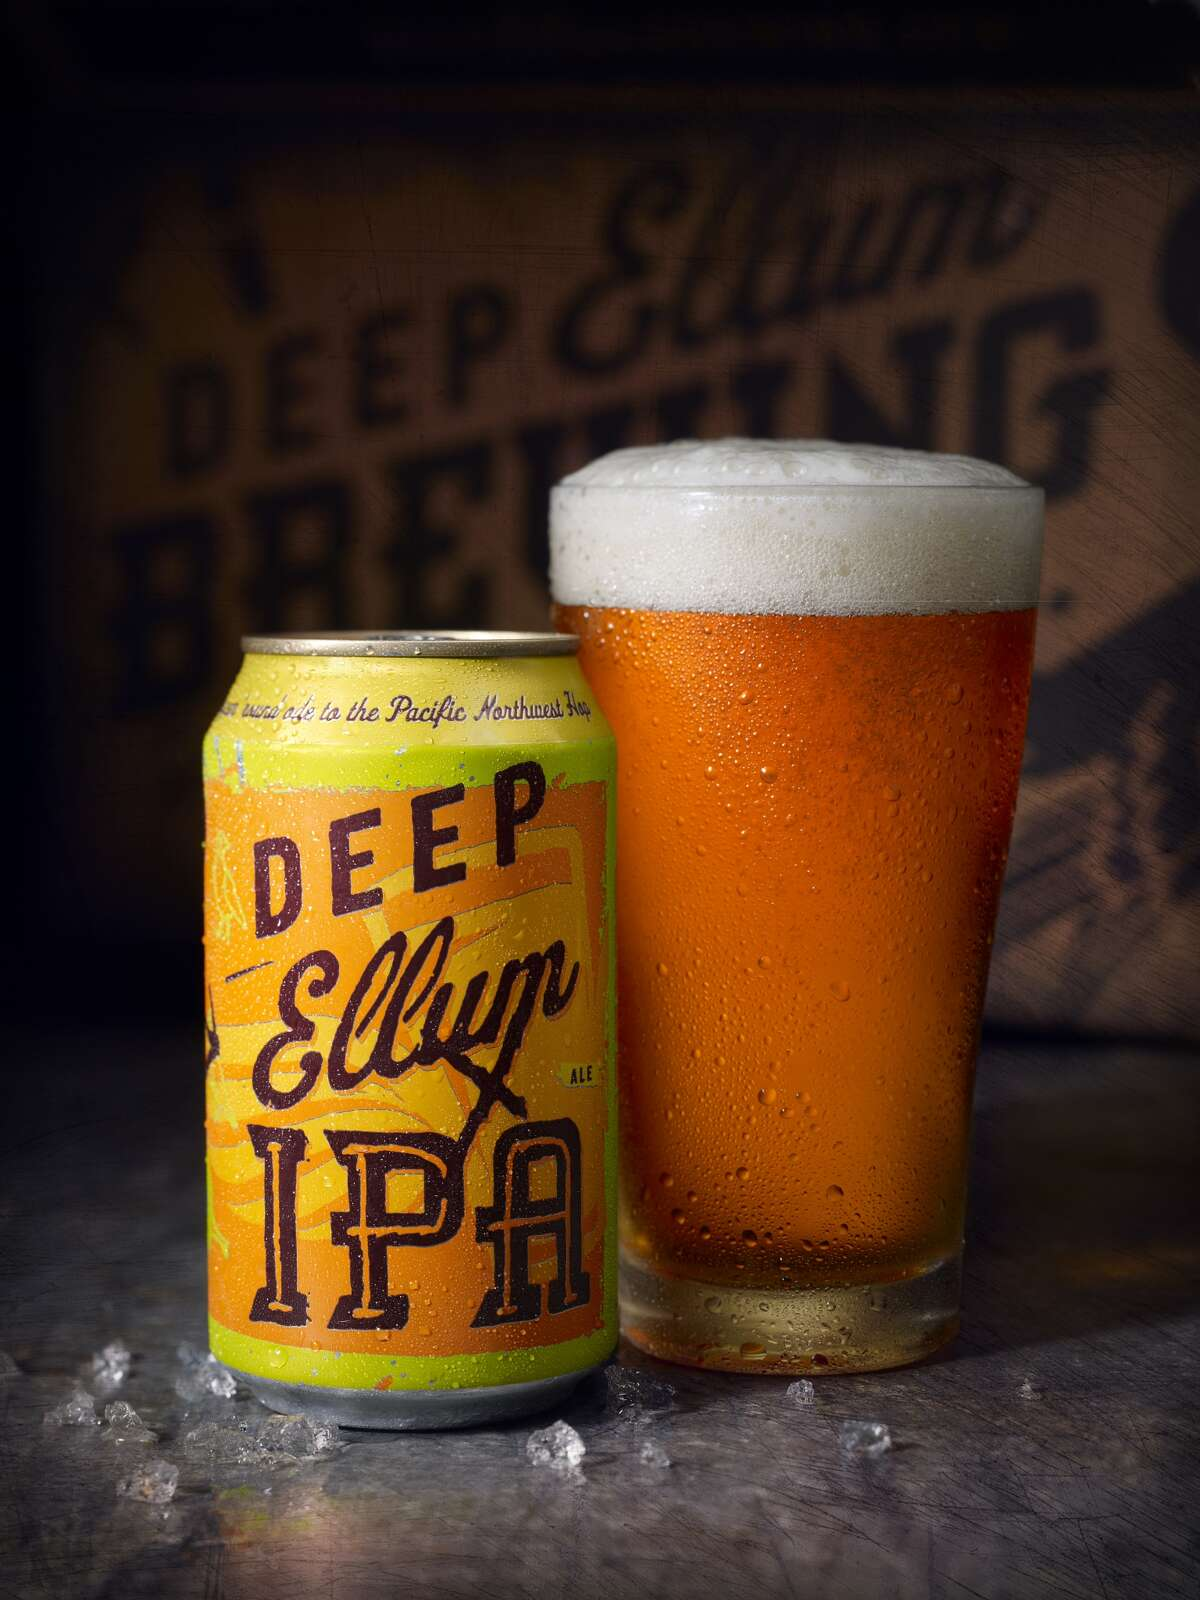 Deep Ellum Brewing Co. of Dallas has limited availability in Houston. But a lawsuit brought by founder/owner John Reardon could have an impact on the way beer is sold across the state. (Deep Ellum Brewing Co.)